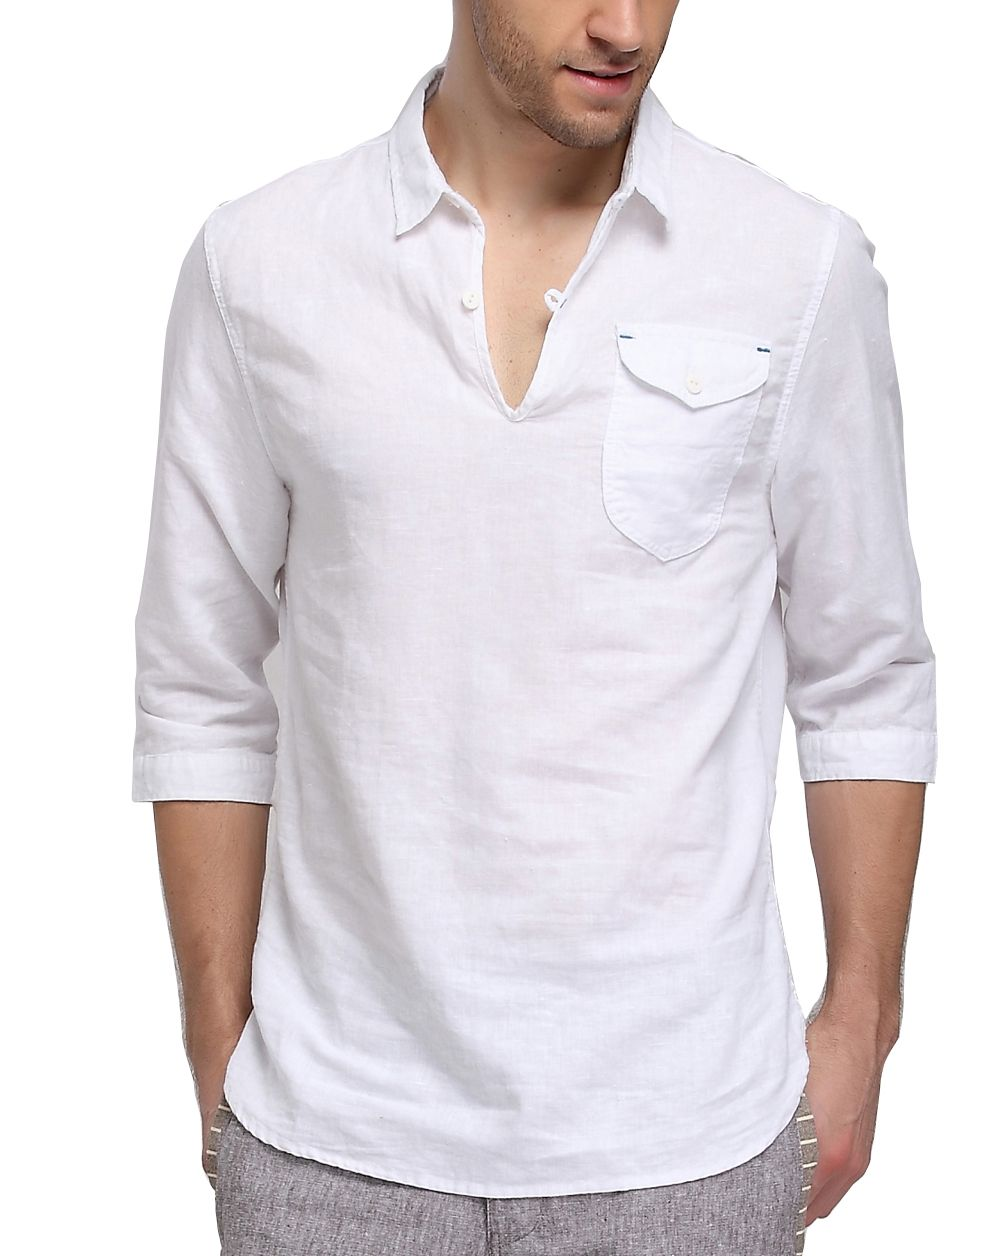 30128cae 55%Linen 45%Cotton Middle sleeve shirt for men Casual beach shirt for men  Beach…